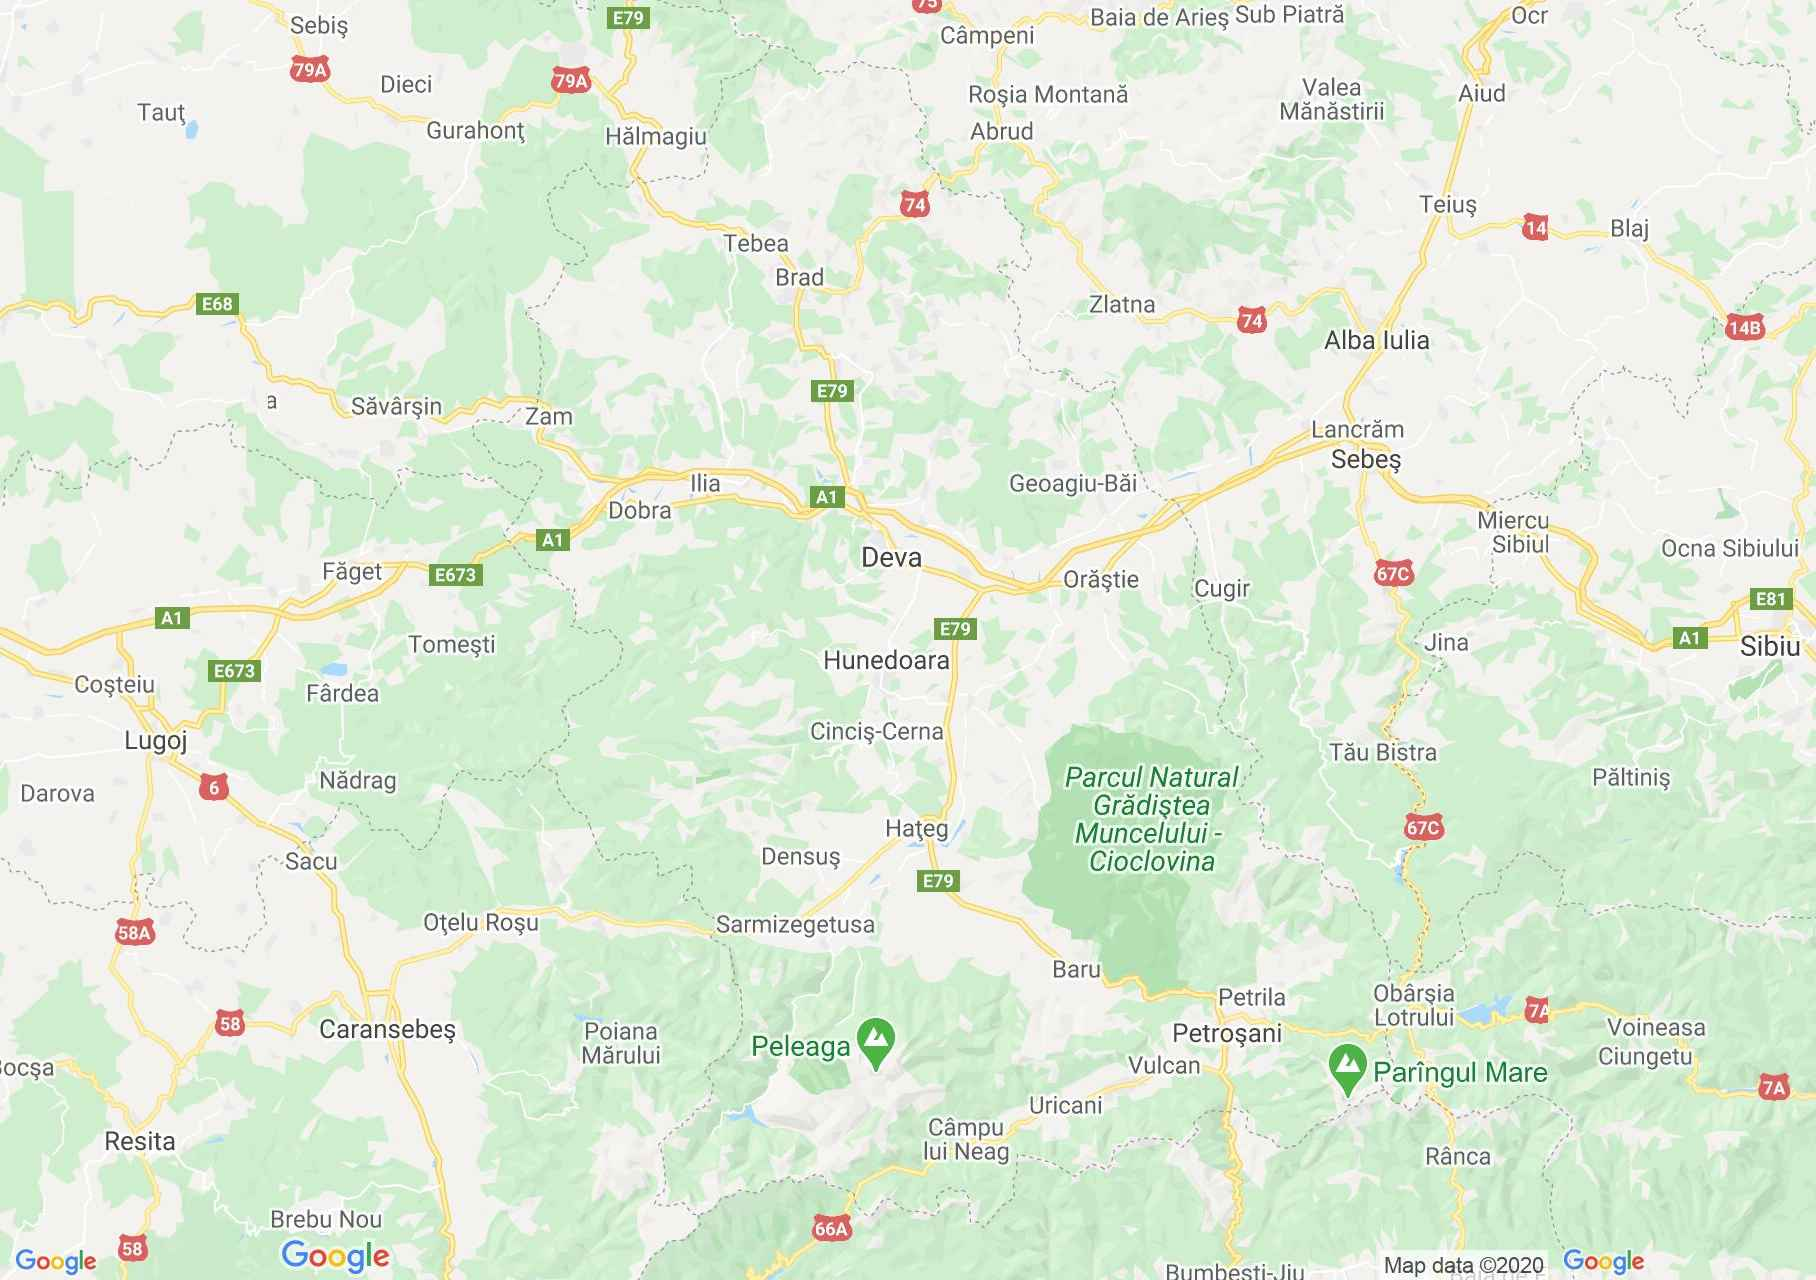 Hunedoara county: (Deva, Interactive tourist map